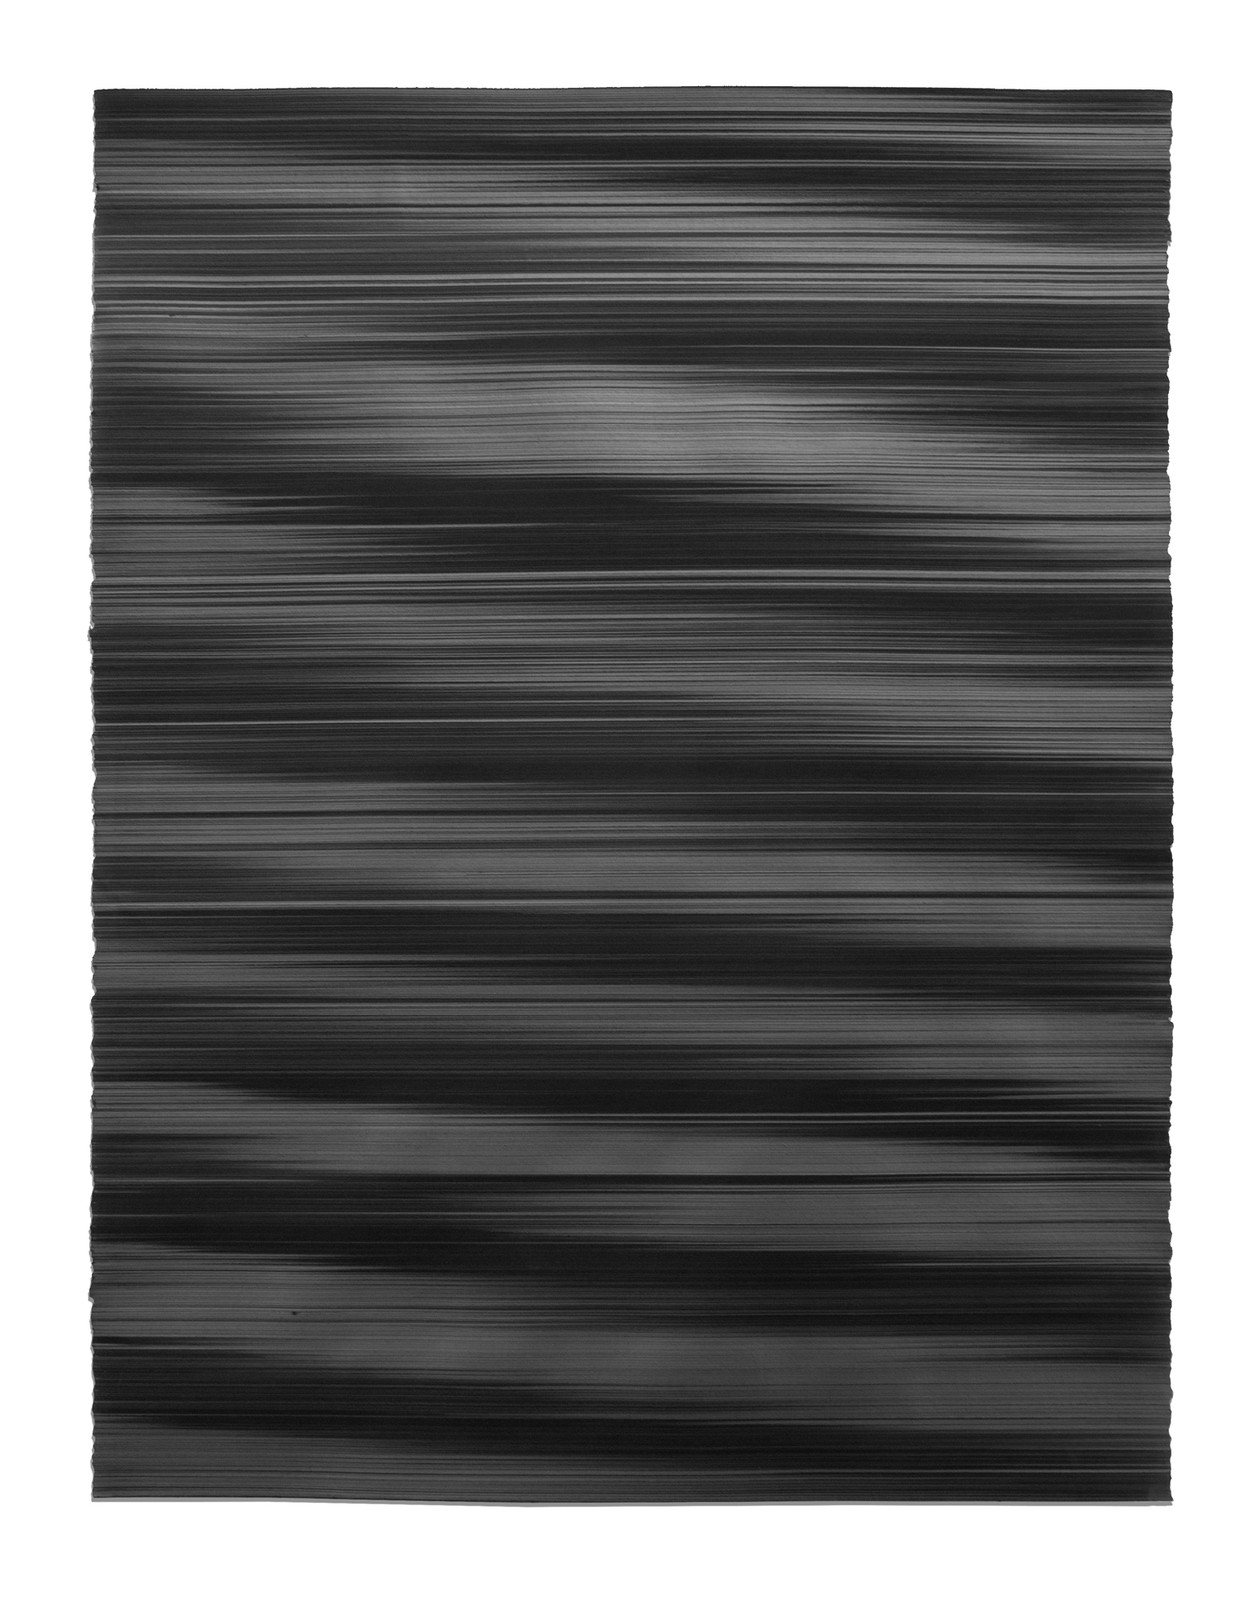 Waves in black No. 2 (2018) by John Whitten